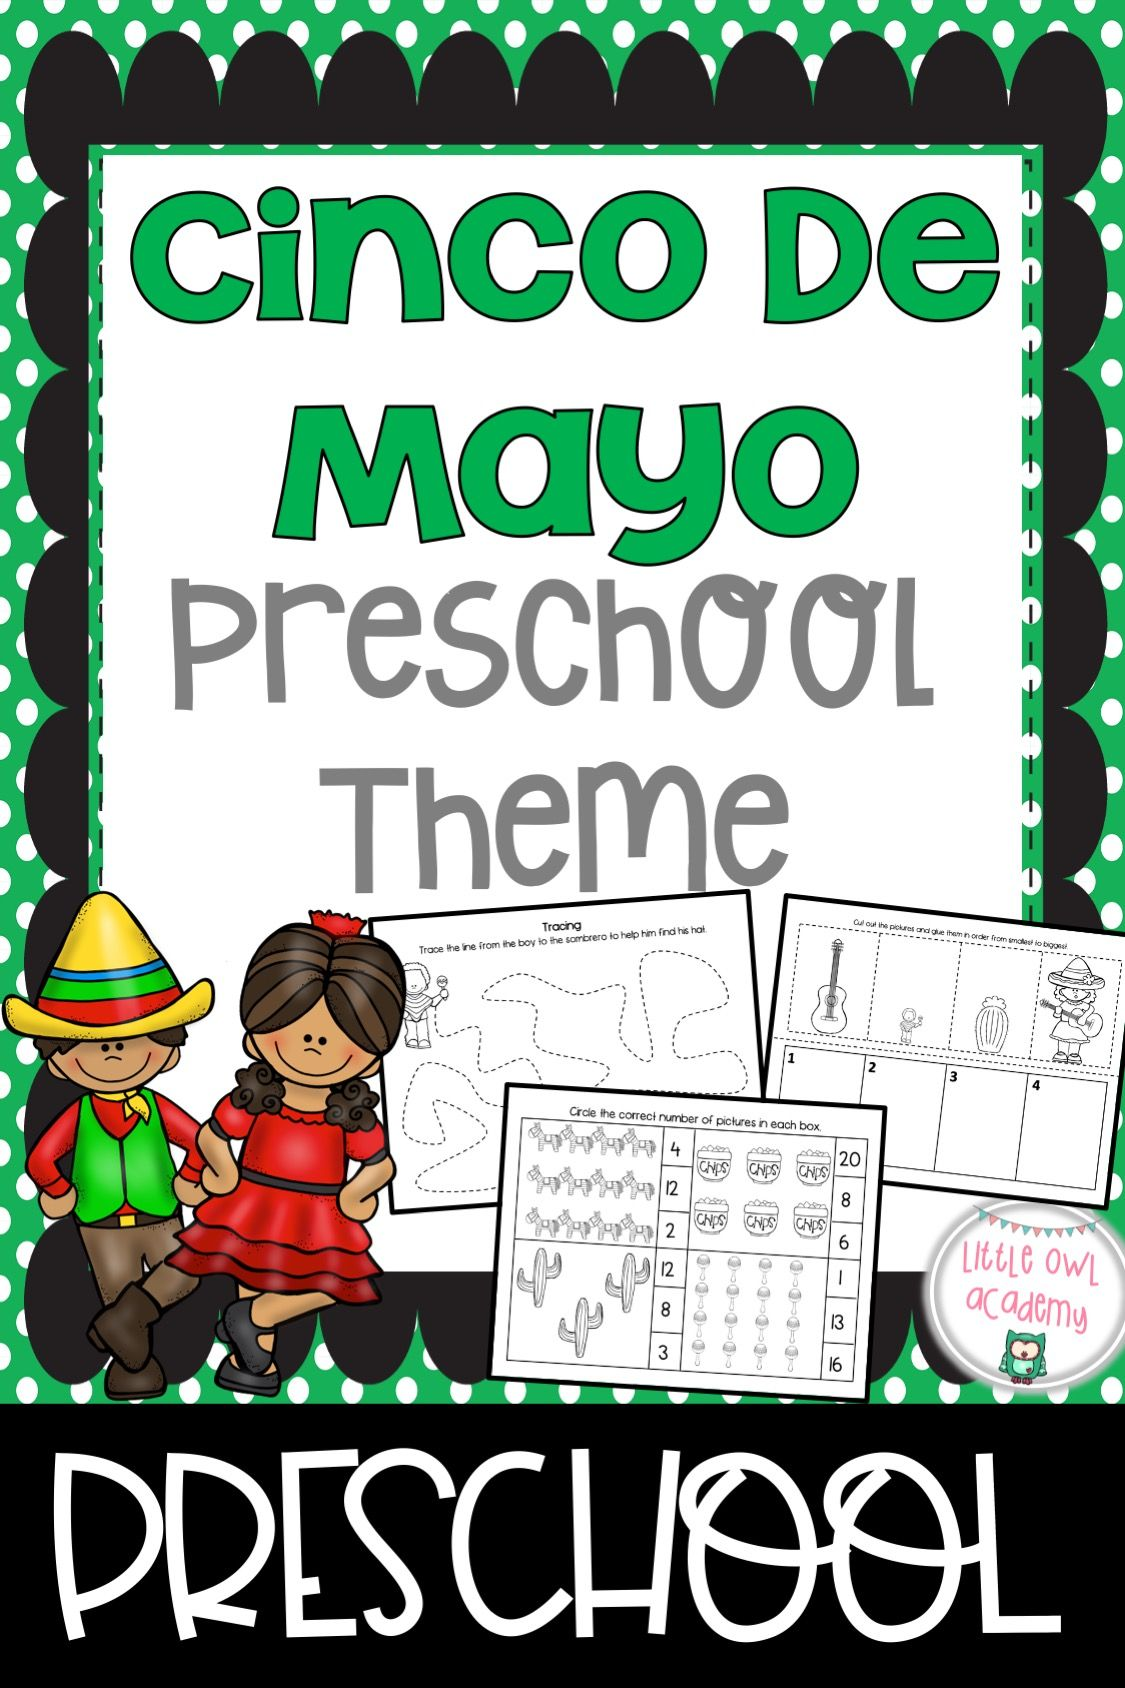 Pin On Little Owl Academy Resources Preschool And Toddler